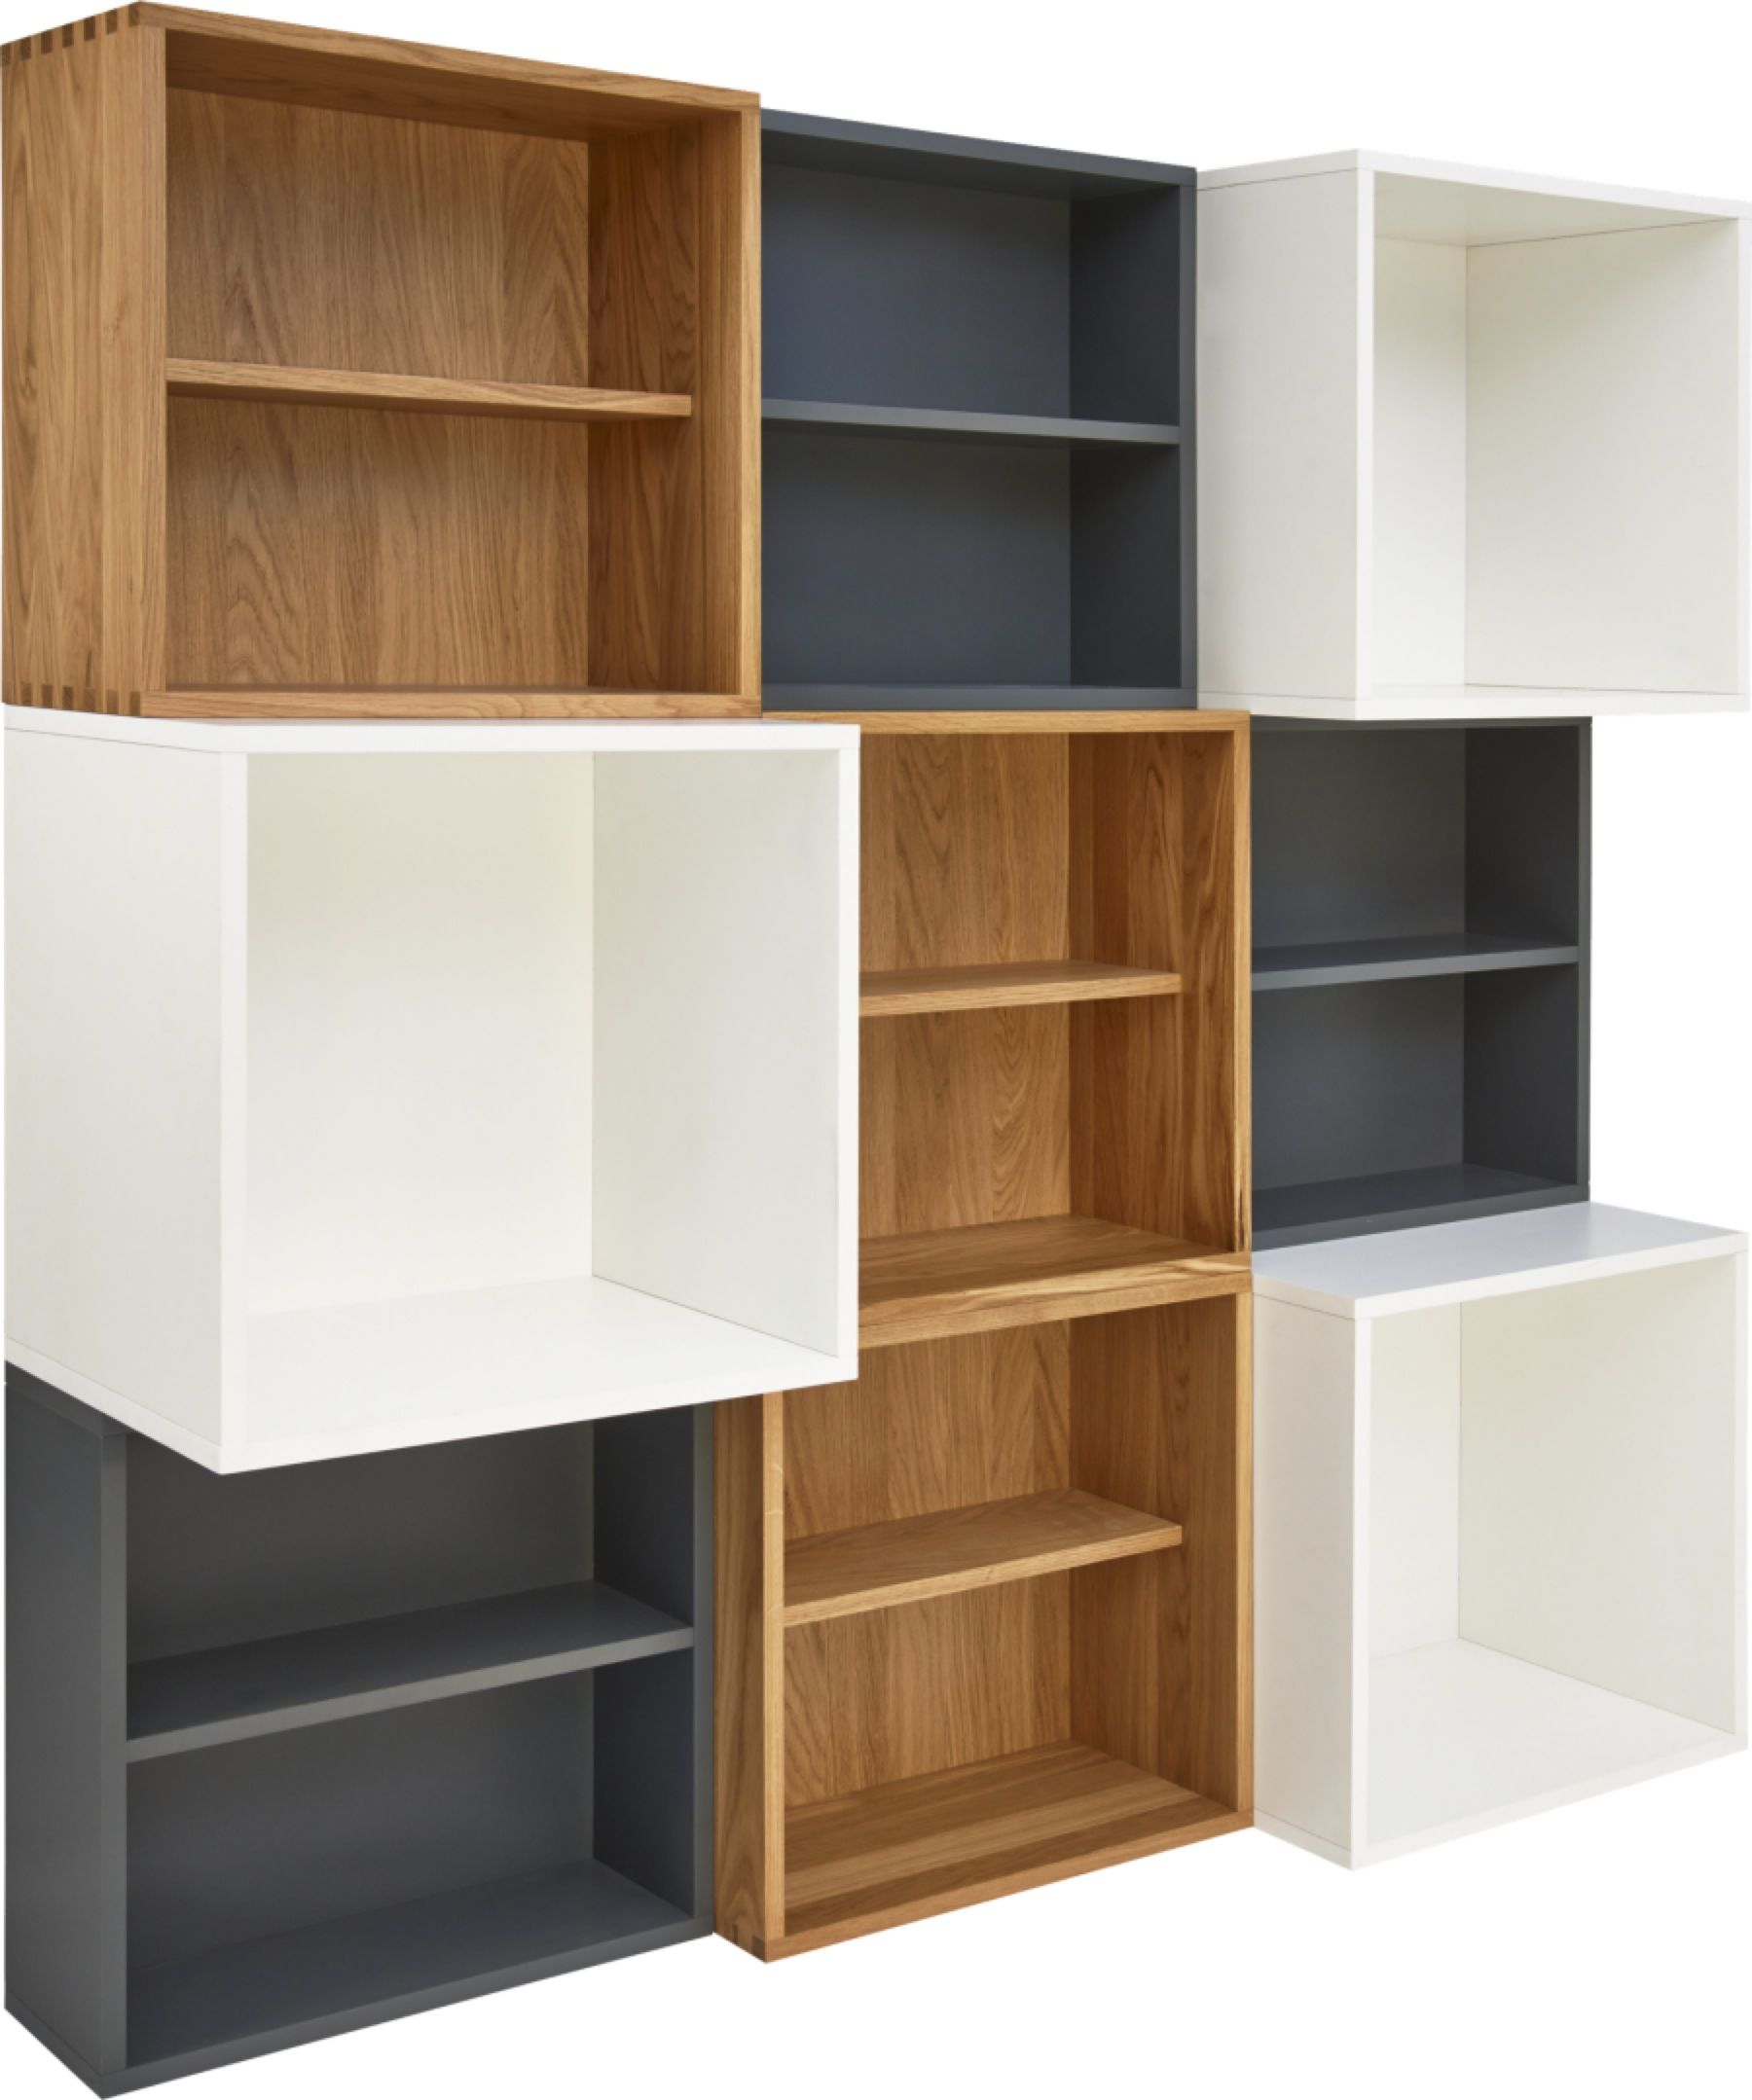 Rangement Bibliotheque Modulable